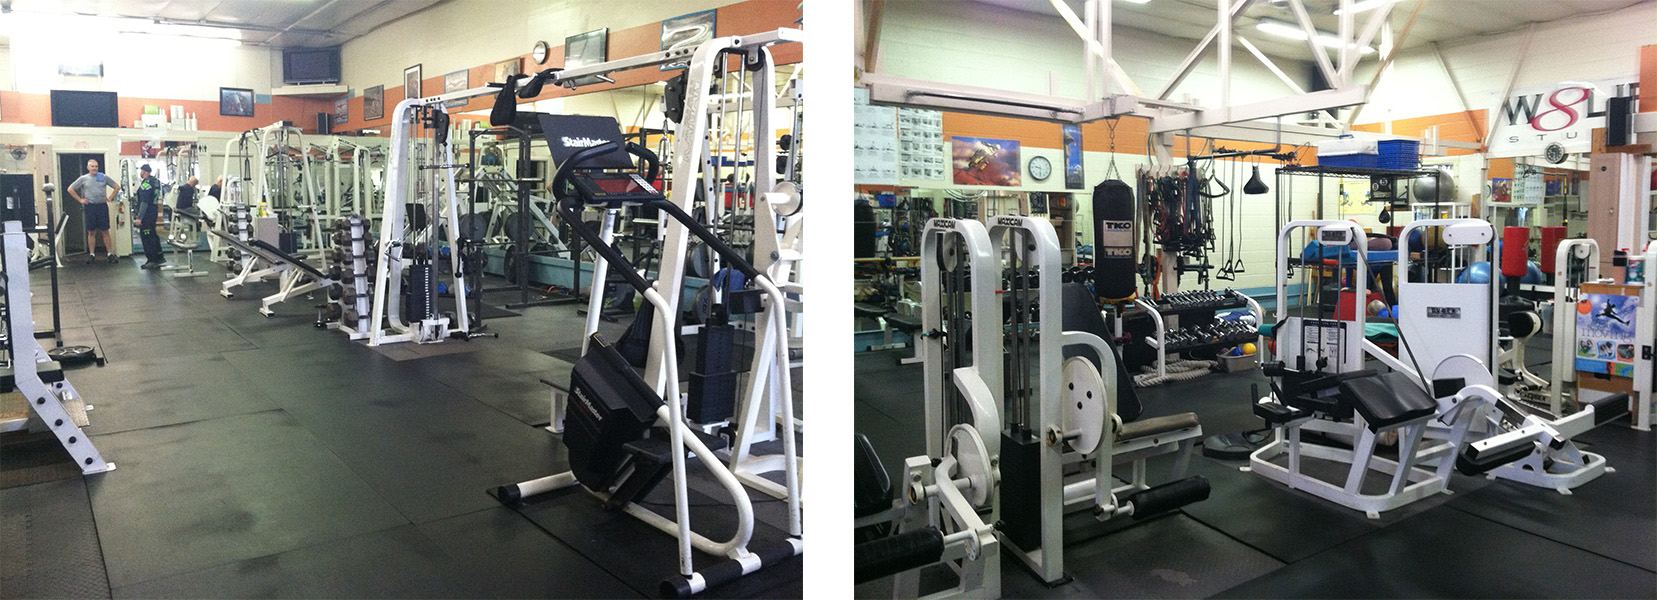 Personal Training in Kirkland and Bellevue